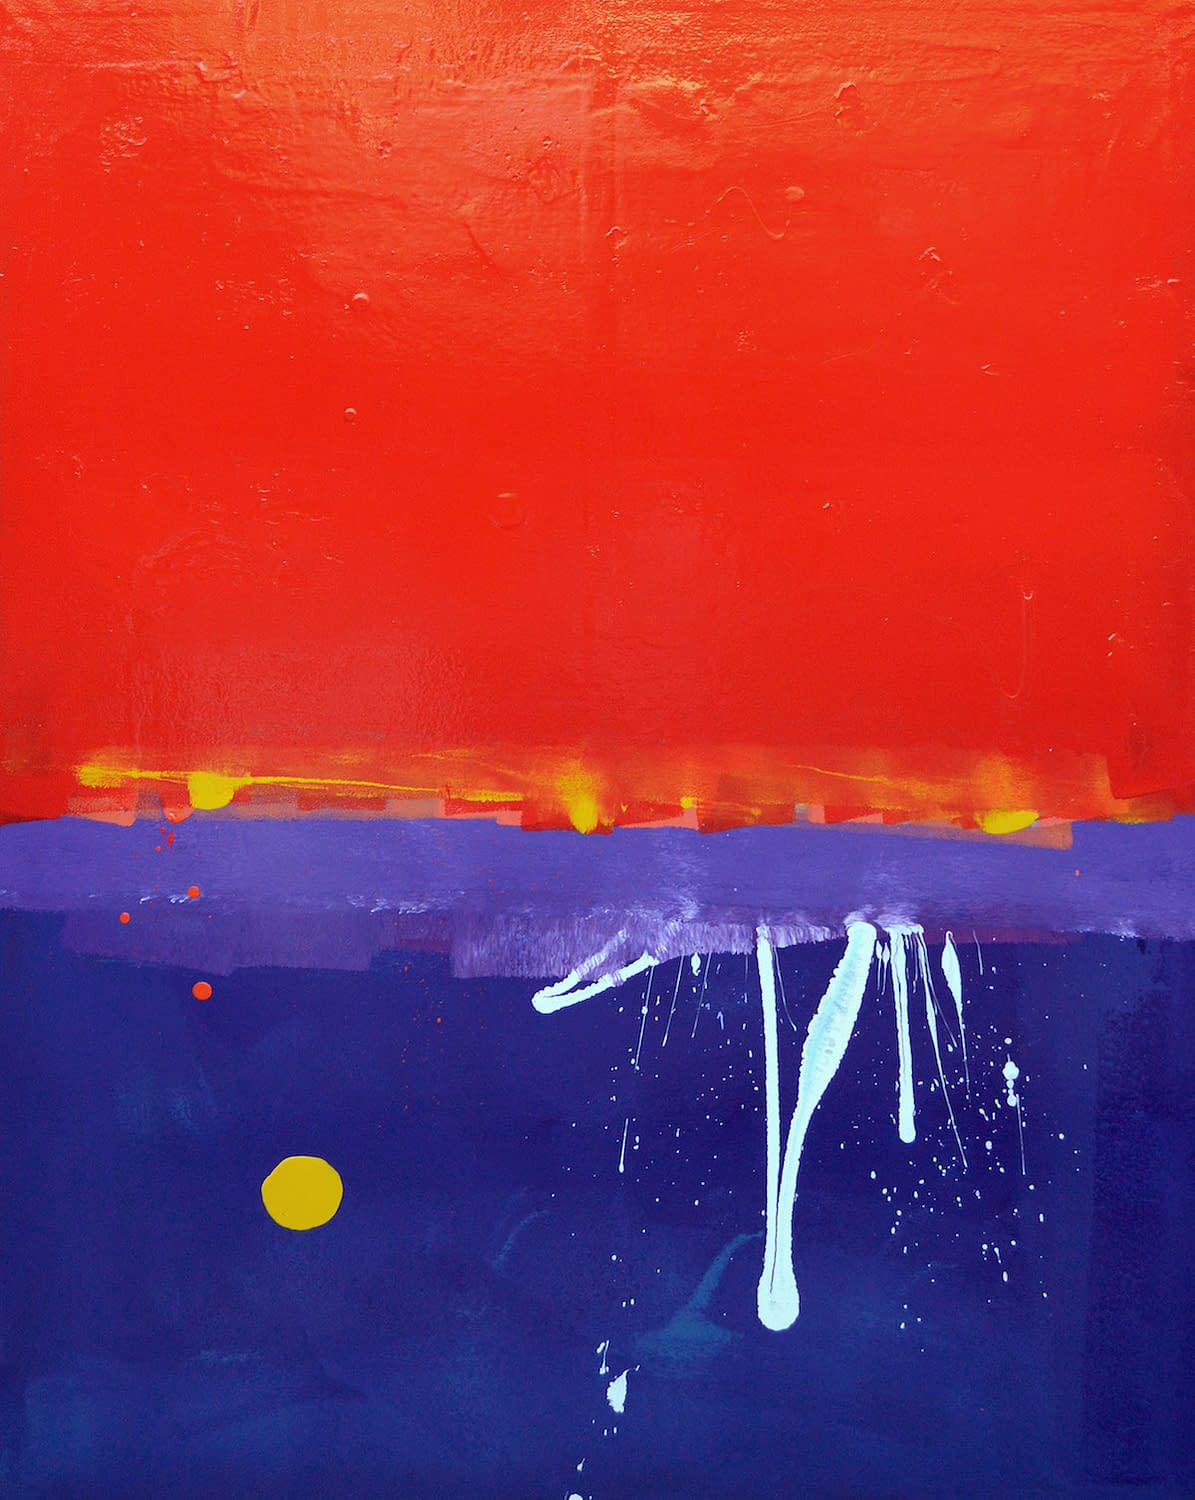 Red, Red, Red Sky With White Squiggle and Yellow Blob Painting